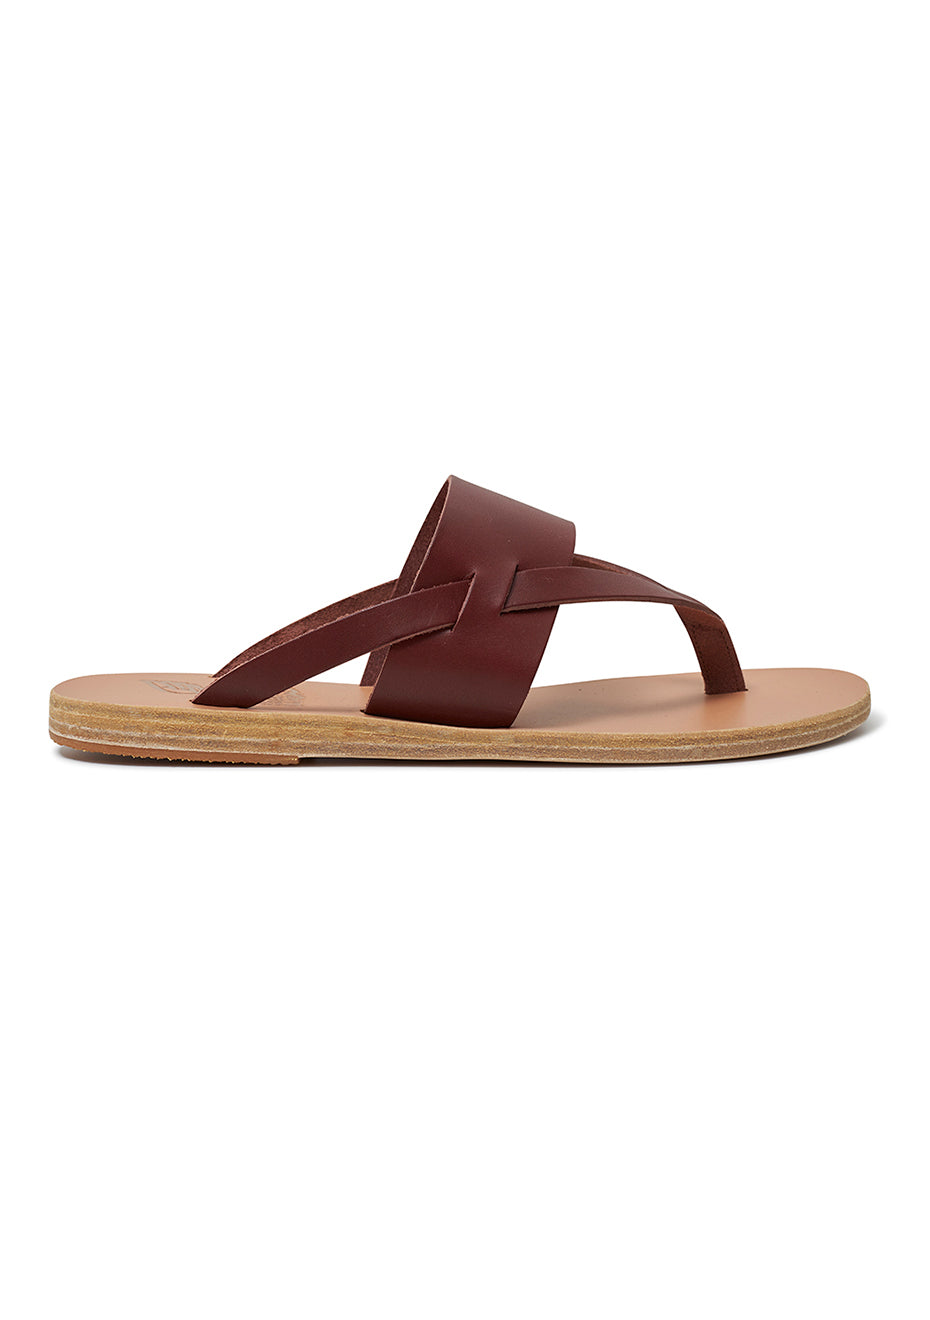 Chestnut Zenobia Sandals